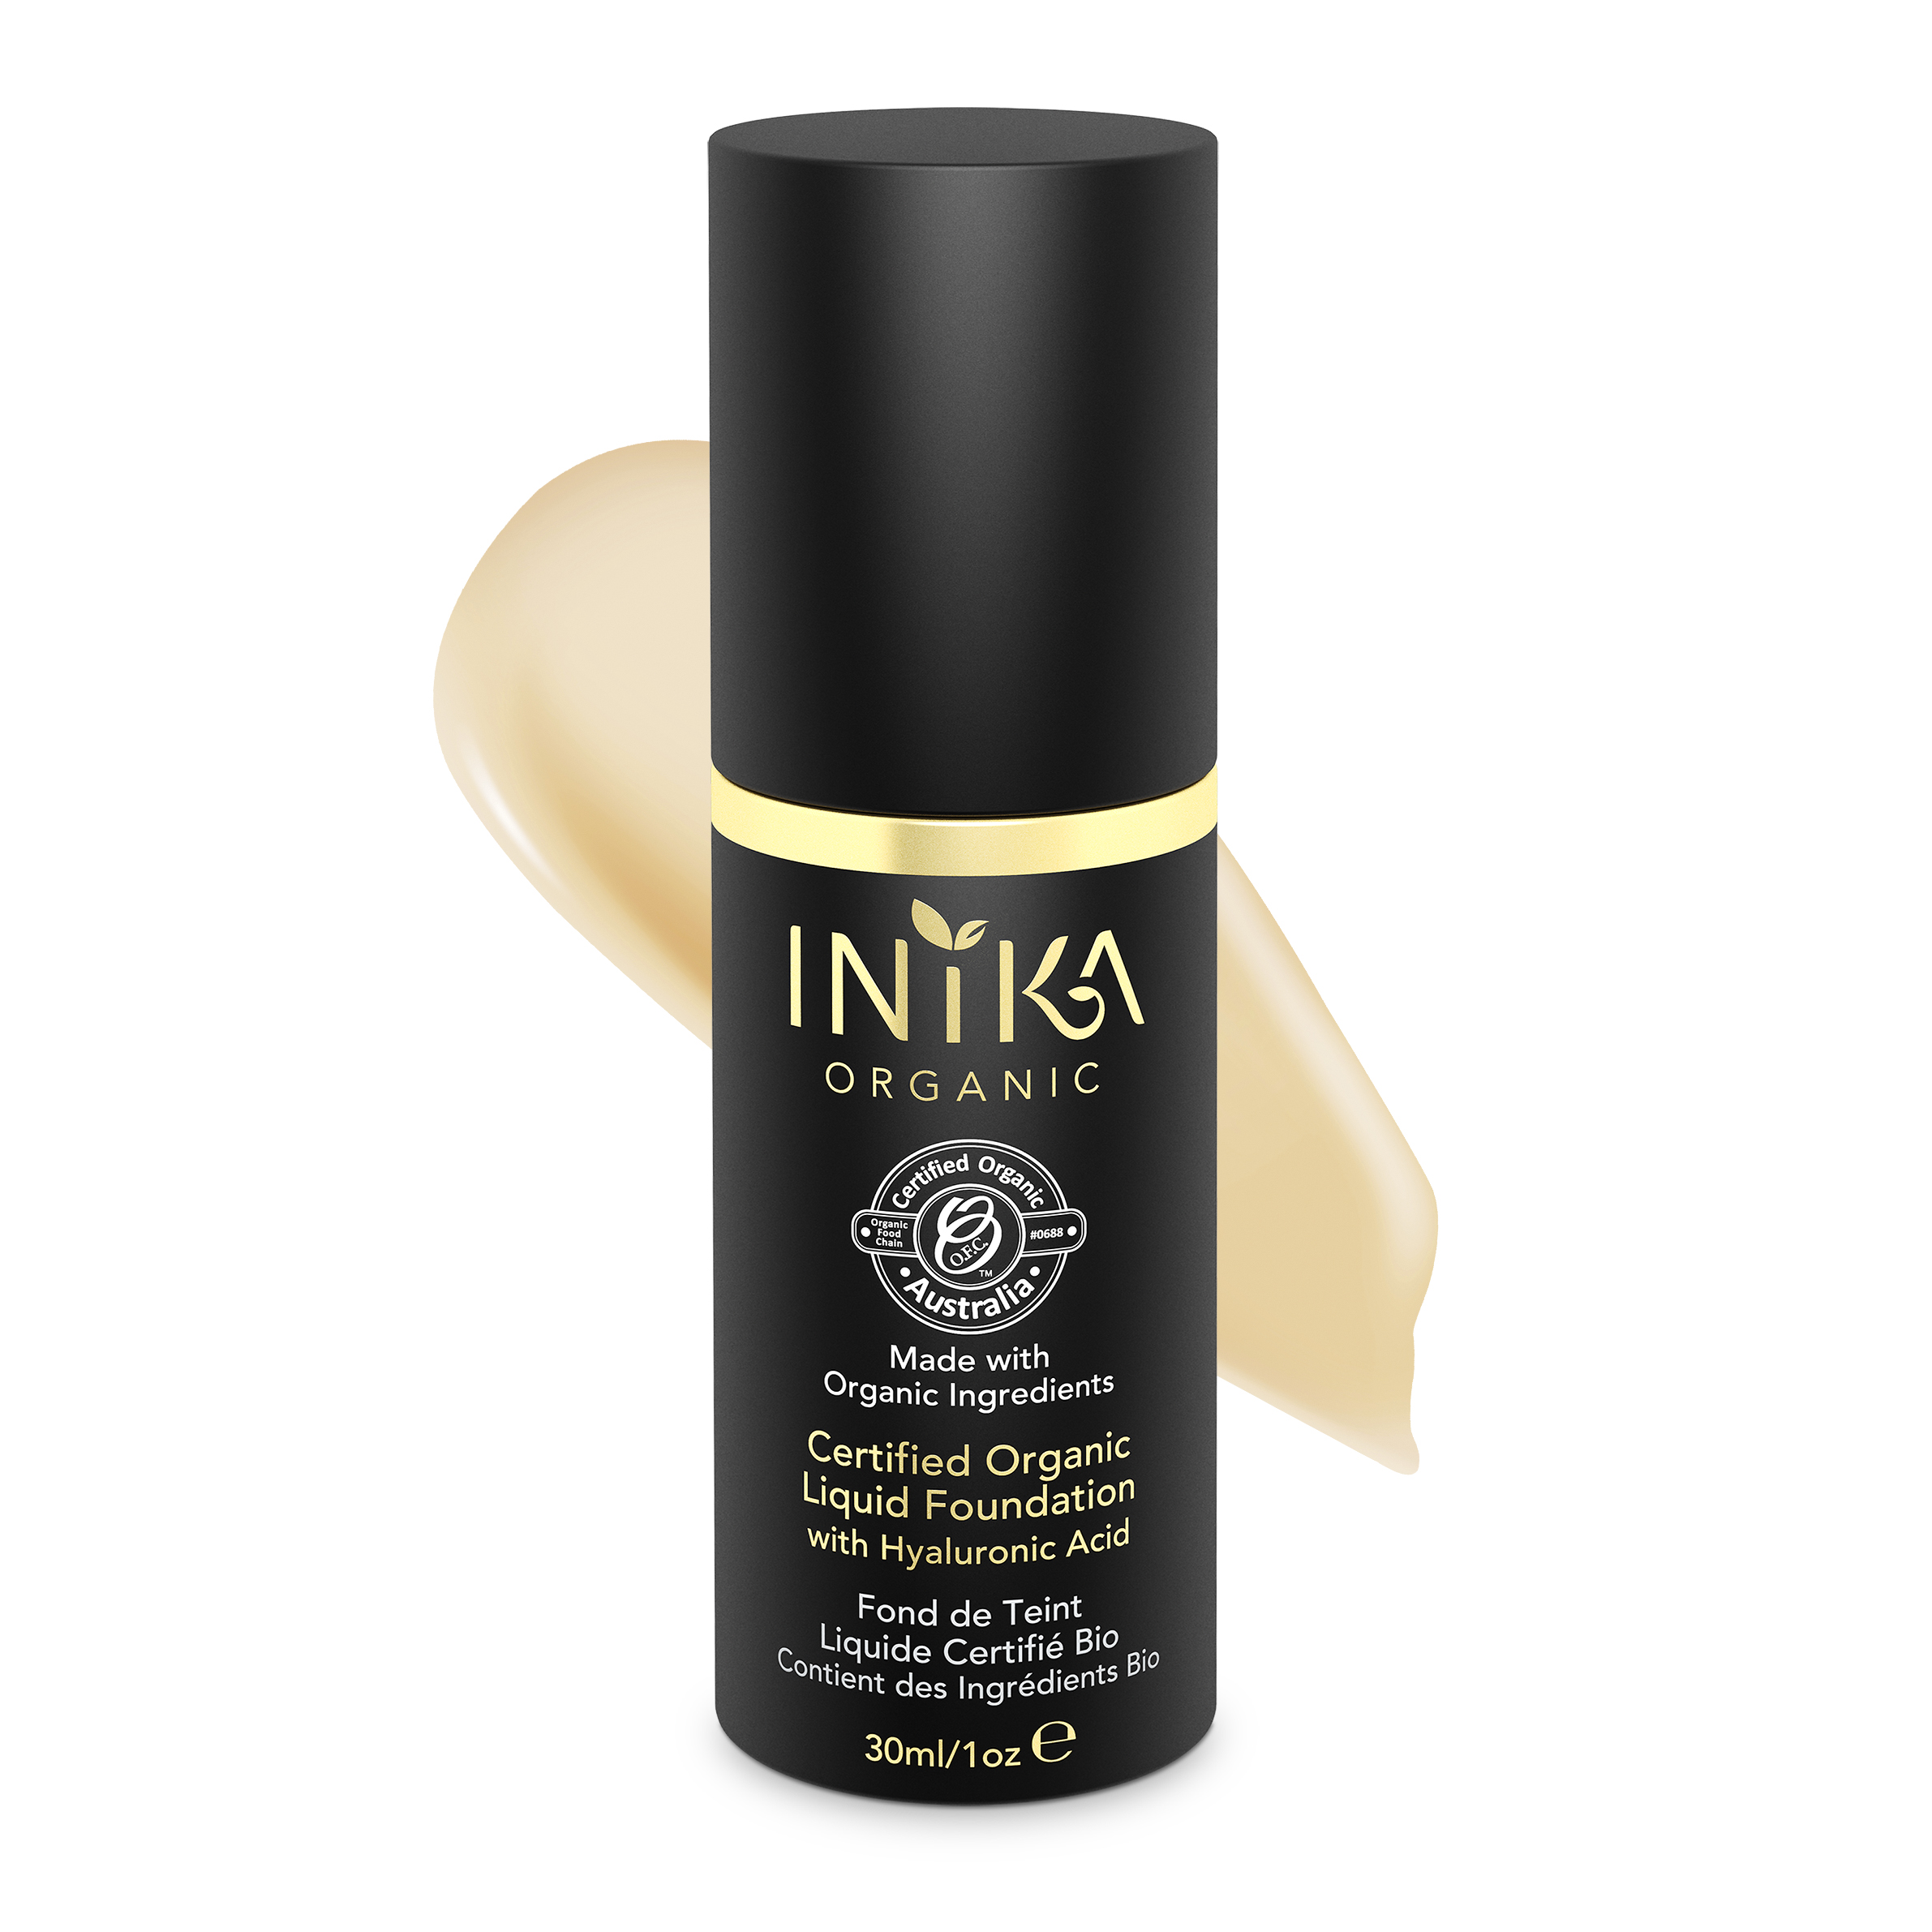 INIKA Certified Organic Liquid Foundation Cream 30ml With Product